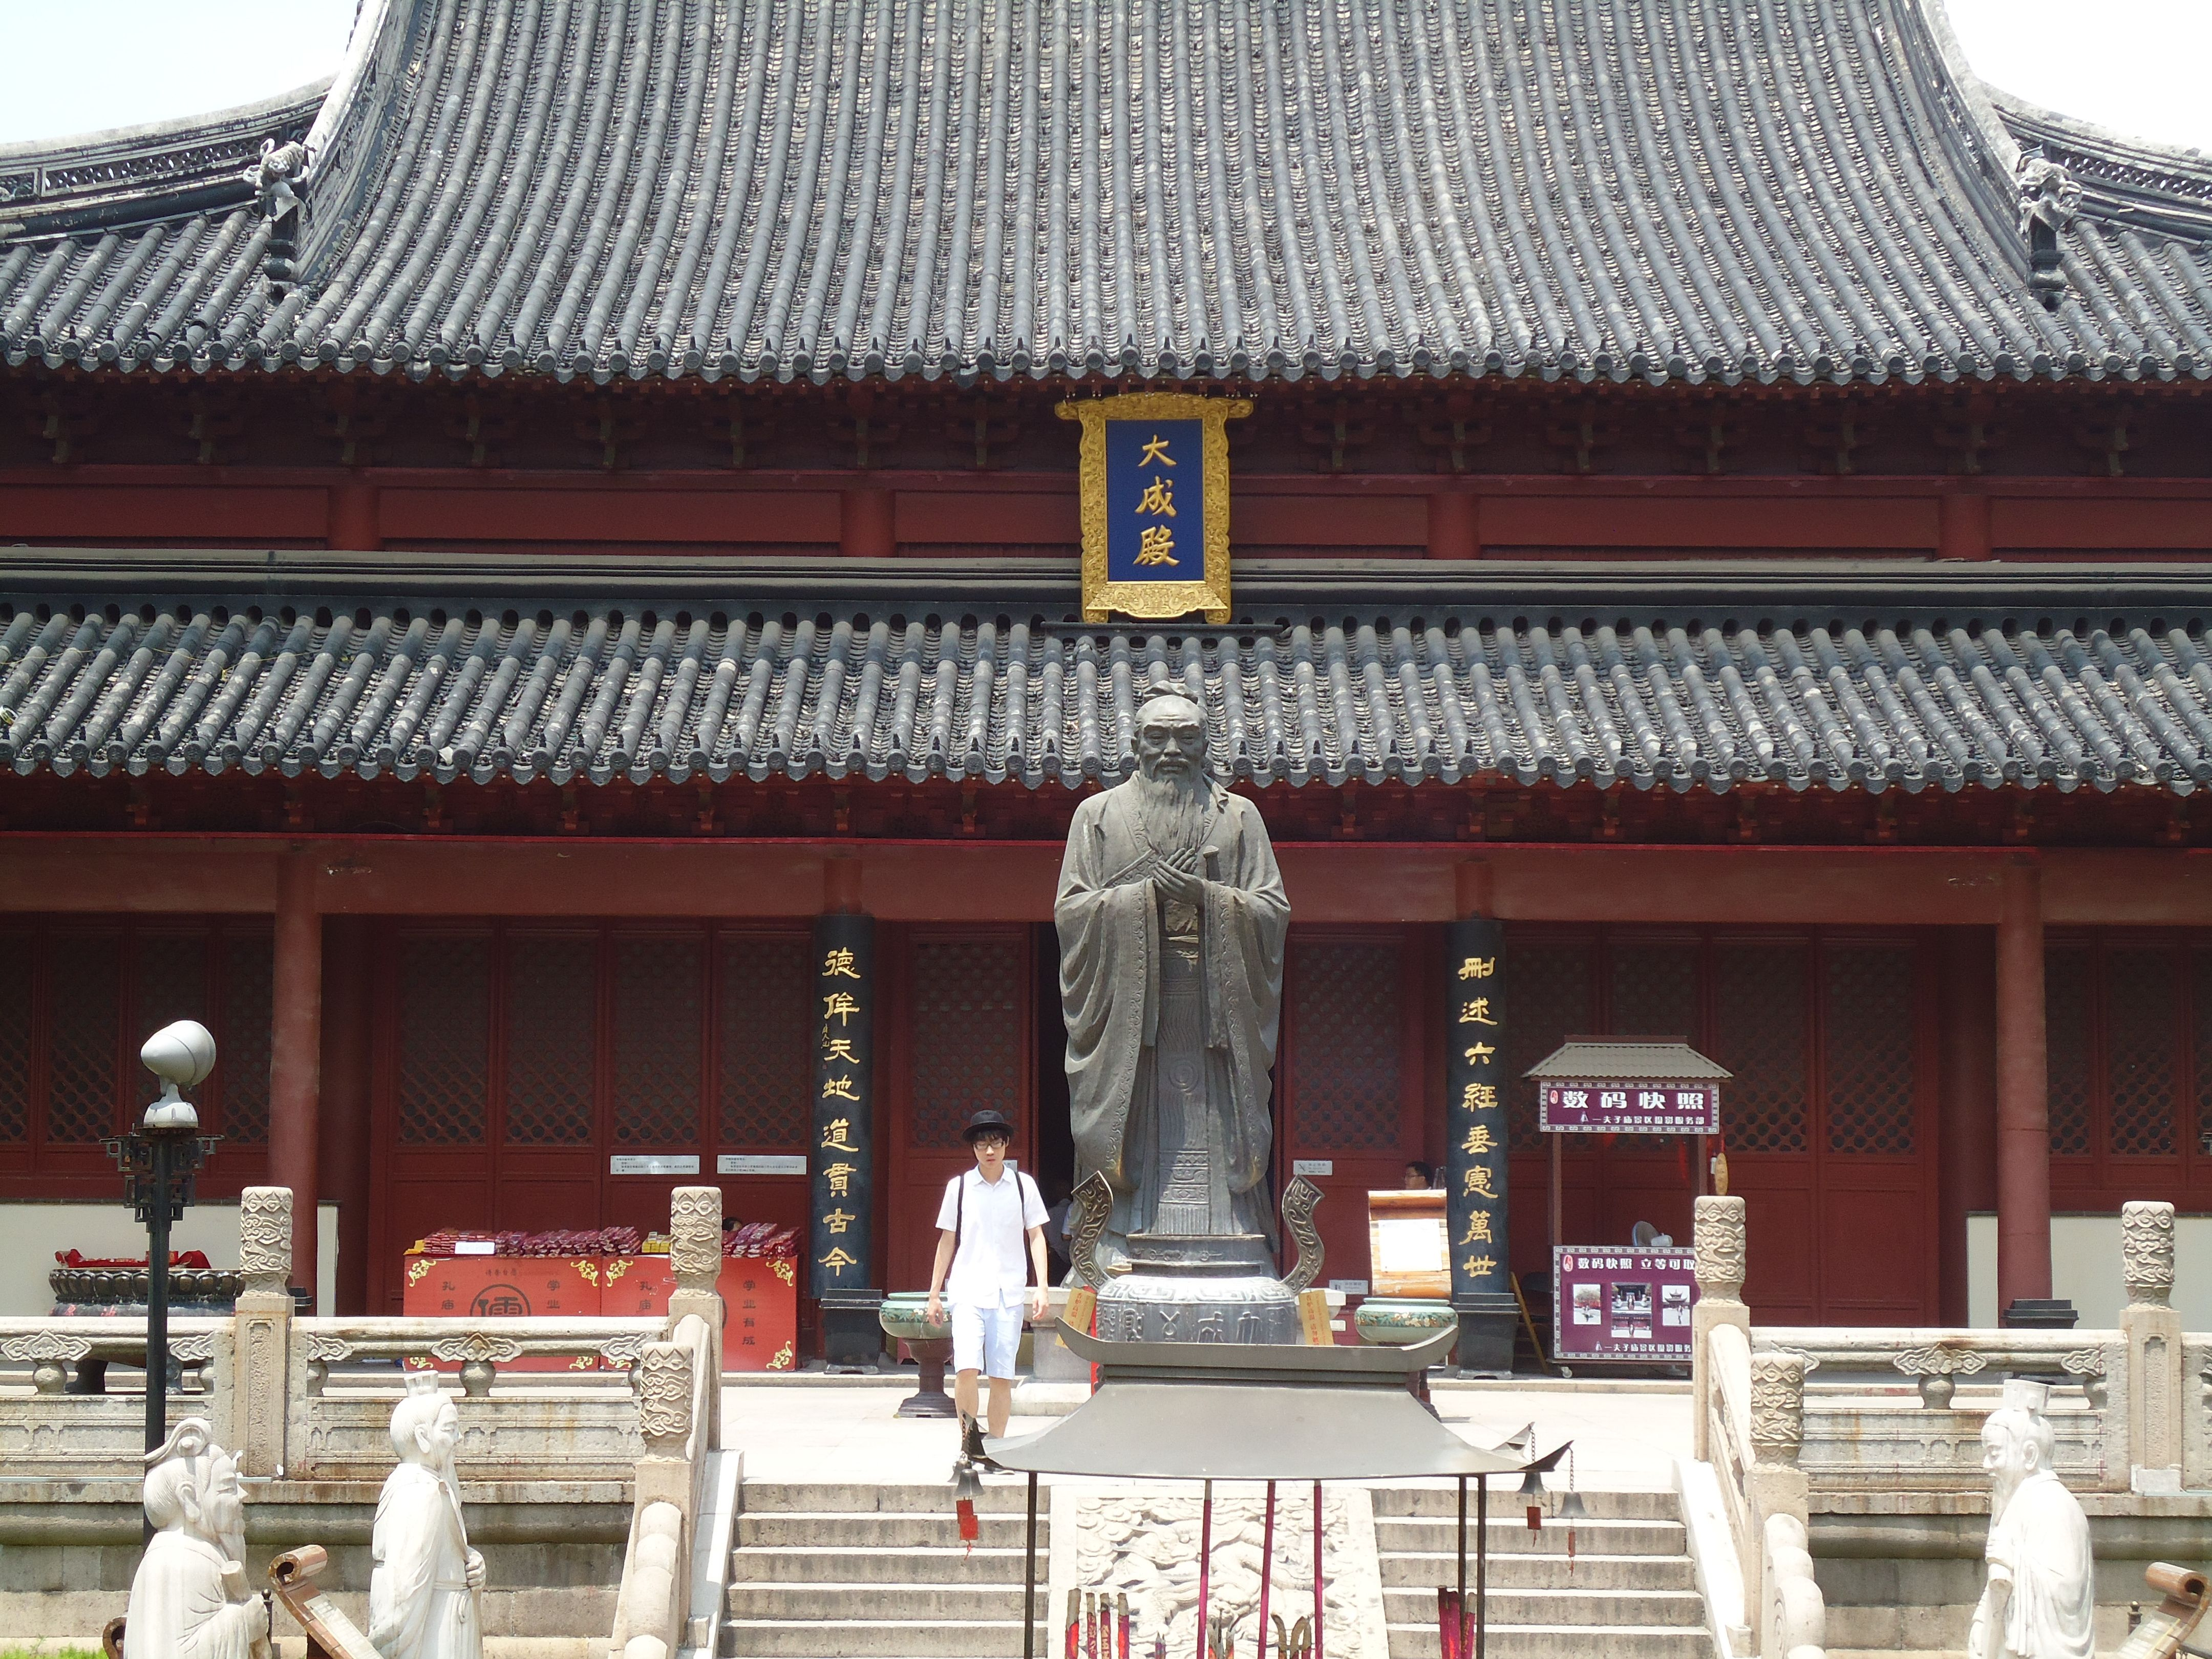 Likeness of Confucius outside his temple in Nanjing